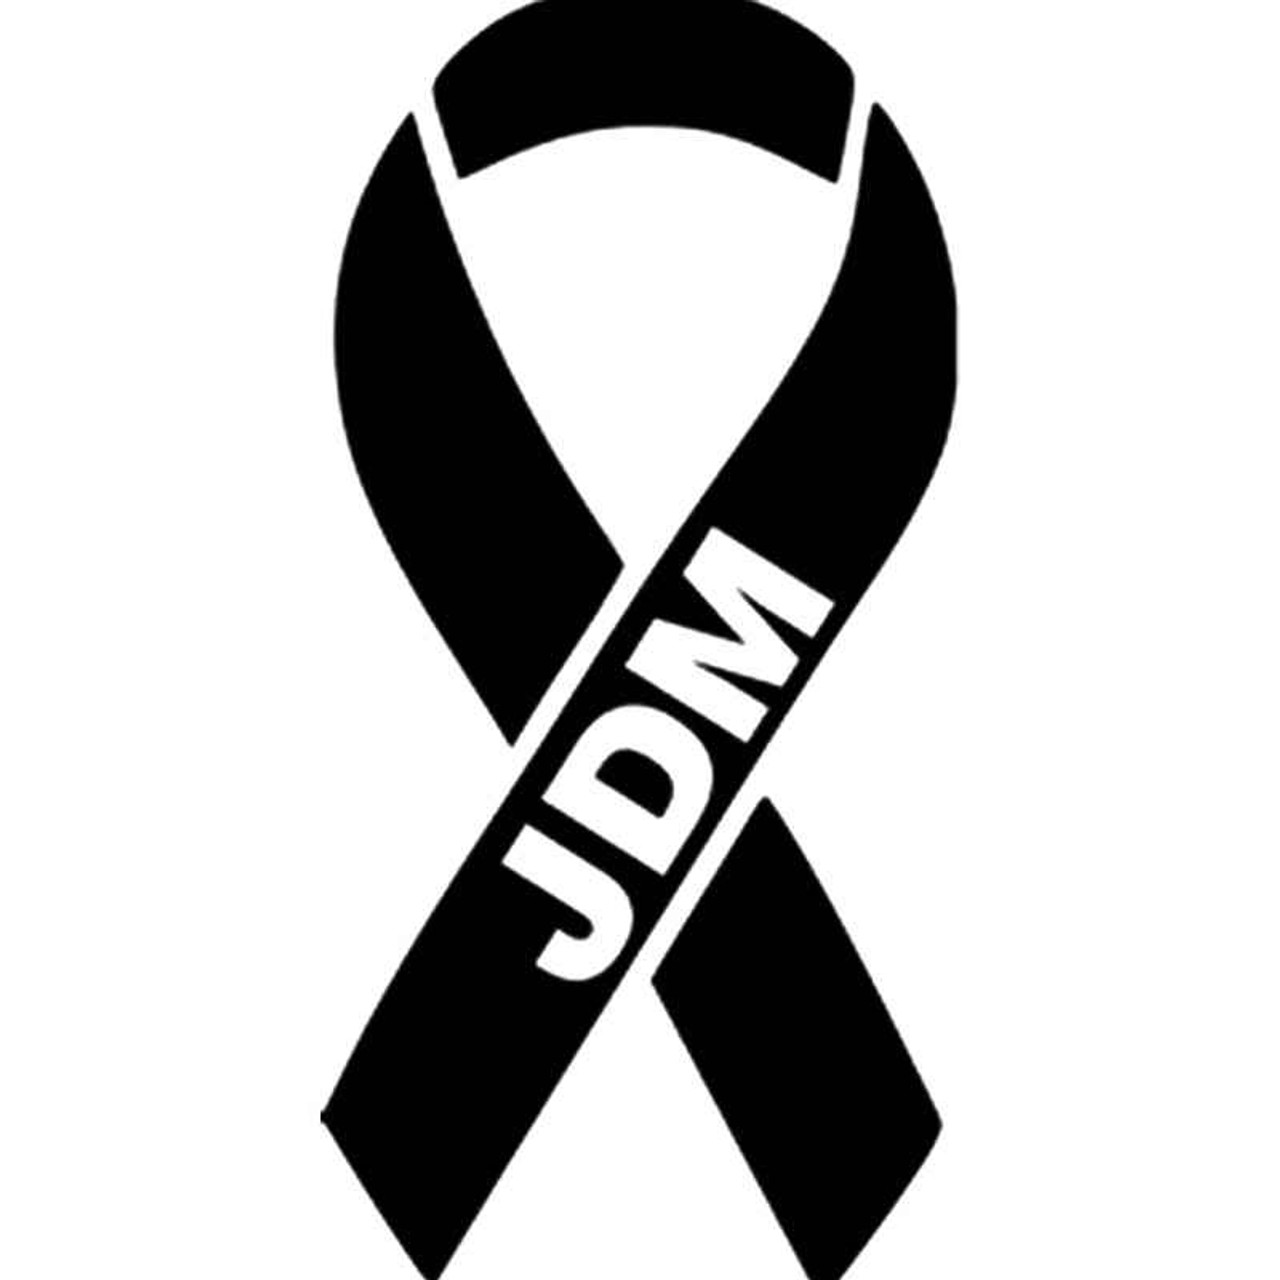 Jdm S Breast Cancer Ribbon Jdm Vinyl Sticker